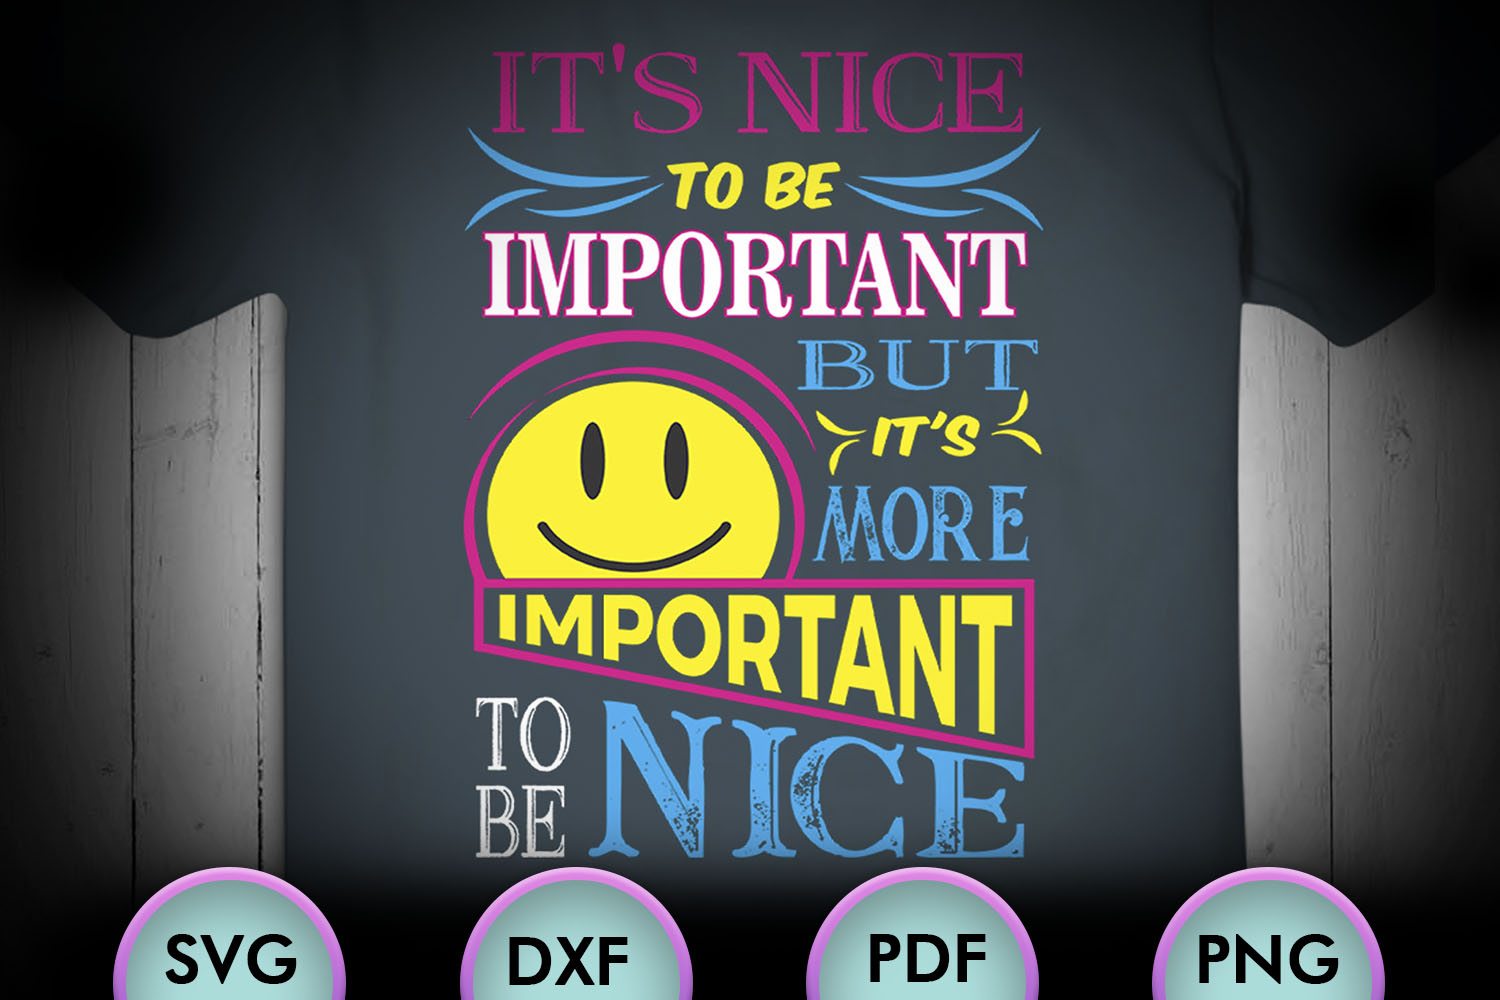 It's Nice To Be Important But The... SVG Design example image 1